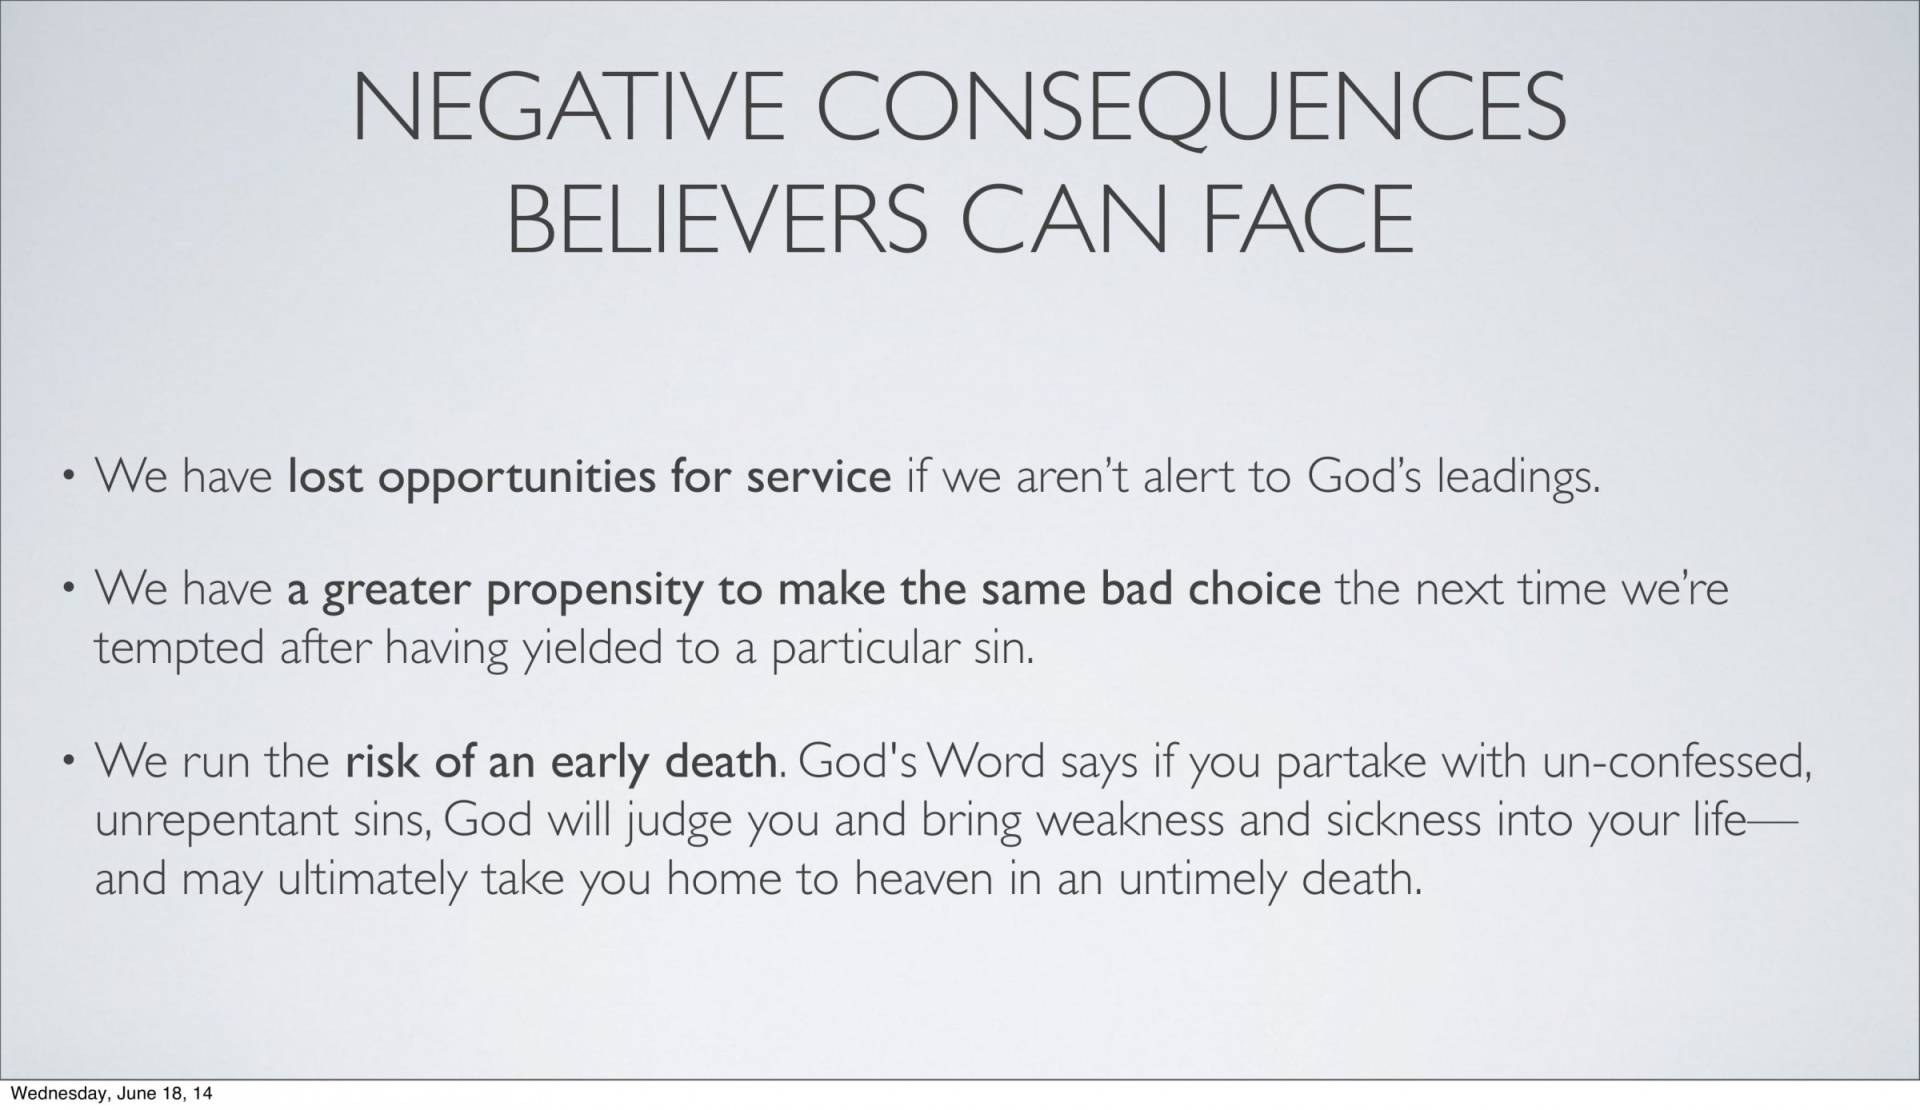 BC&D-14 - Lesson 5-1 - The Inescapable Consequences Of Sin-17